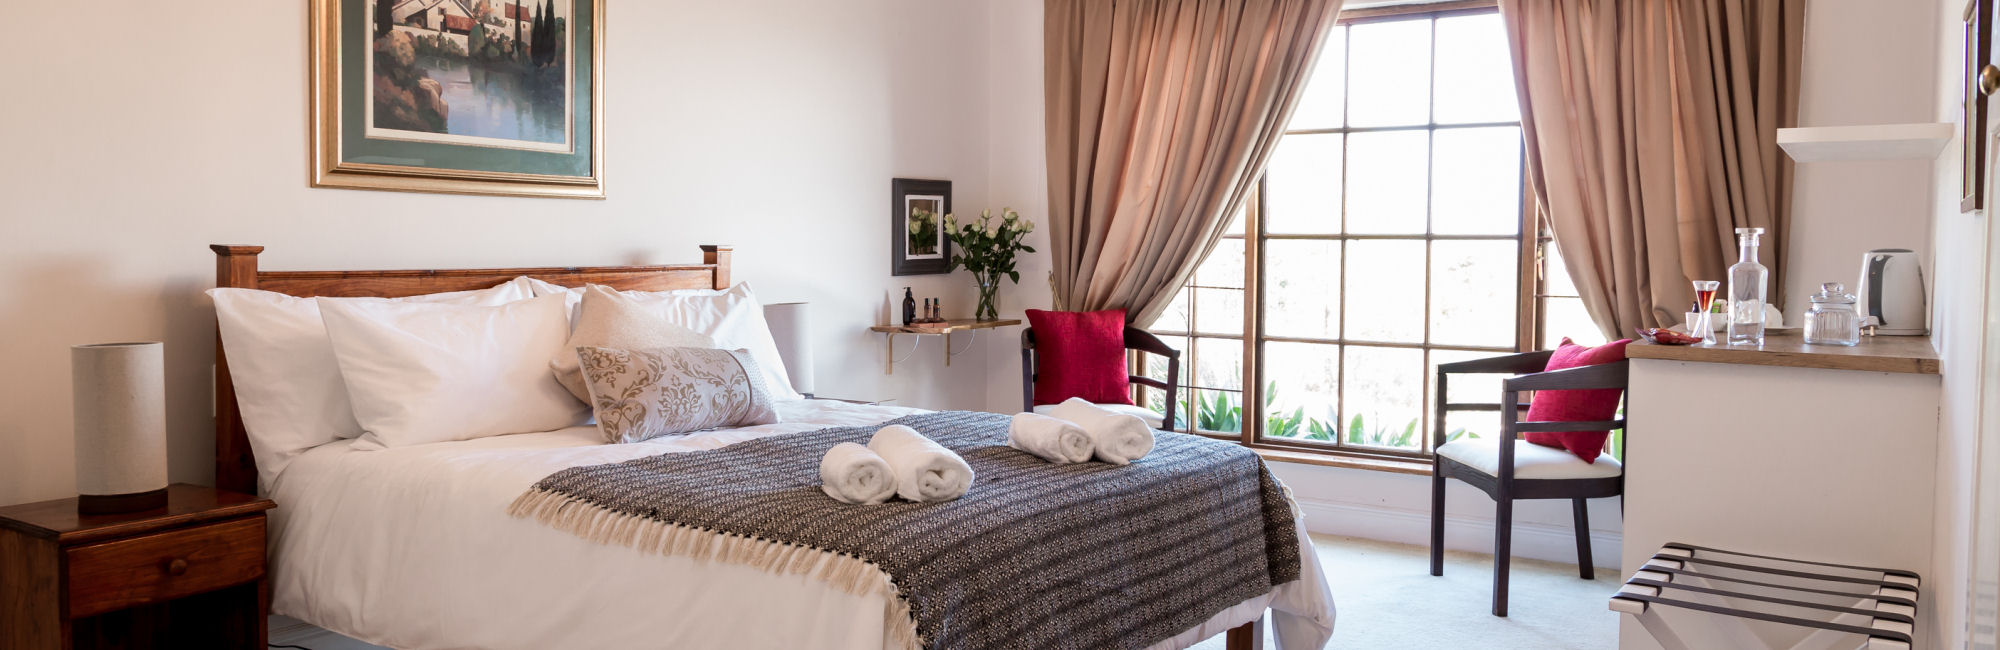 Accommodation in Knysna, Moncrieff Manor